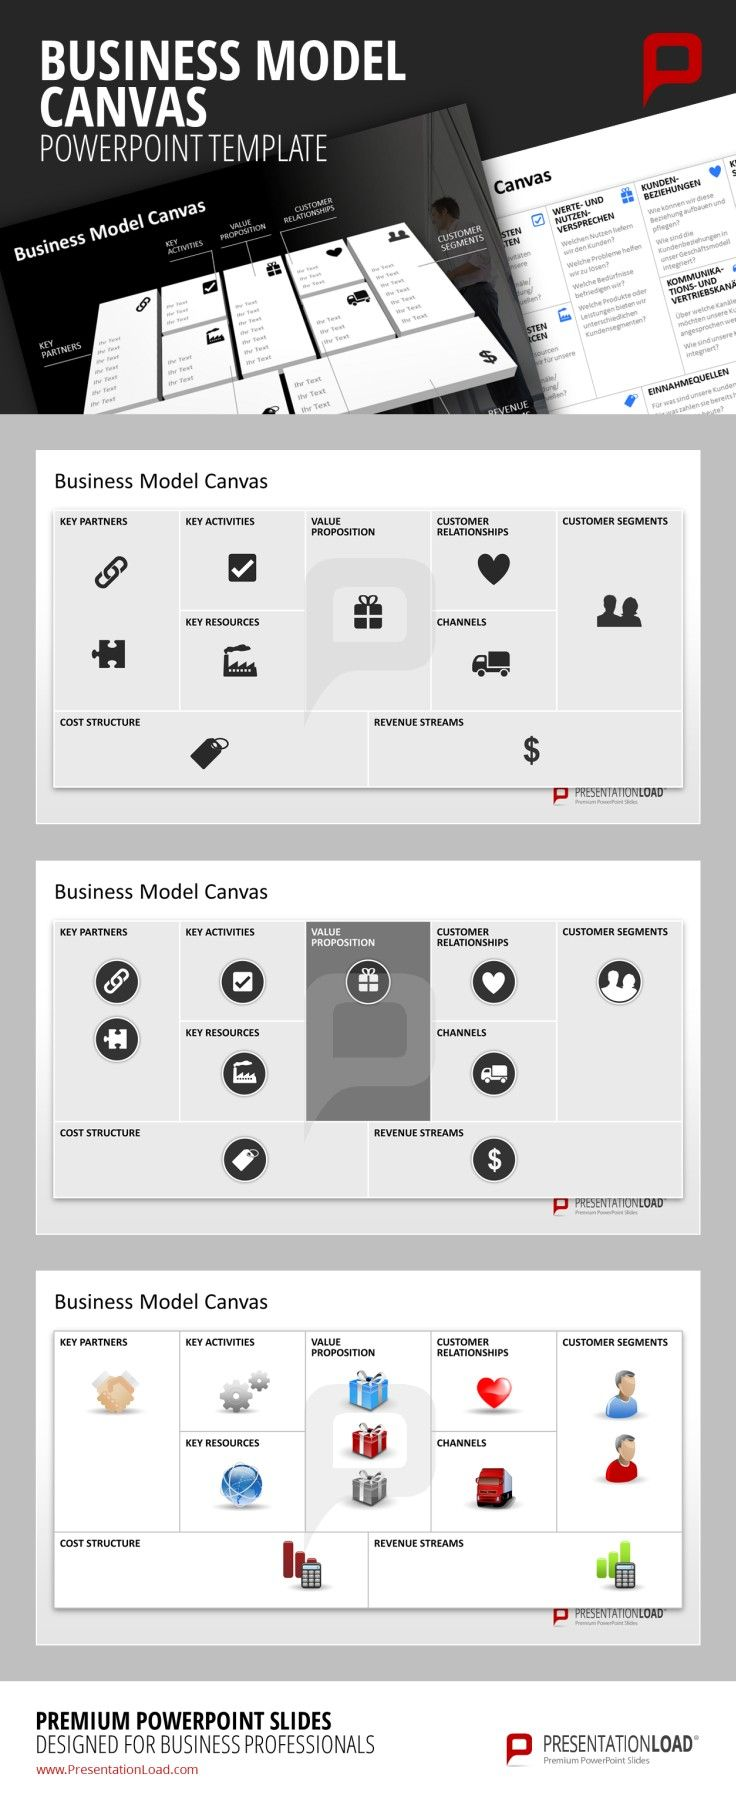 37 best business model canvas powerpoint templates images on business model canvas powerpoint template the several business model canvas templates for powerpoint come in different designs in flat design accmission